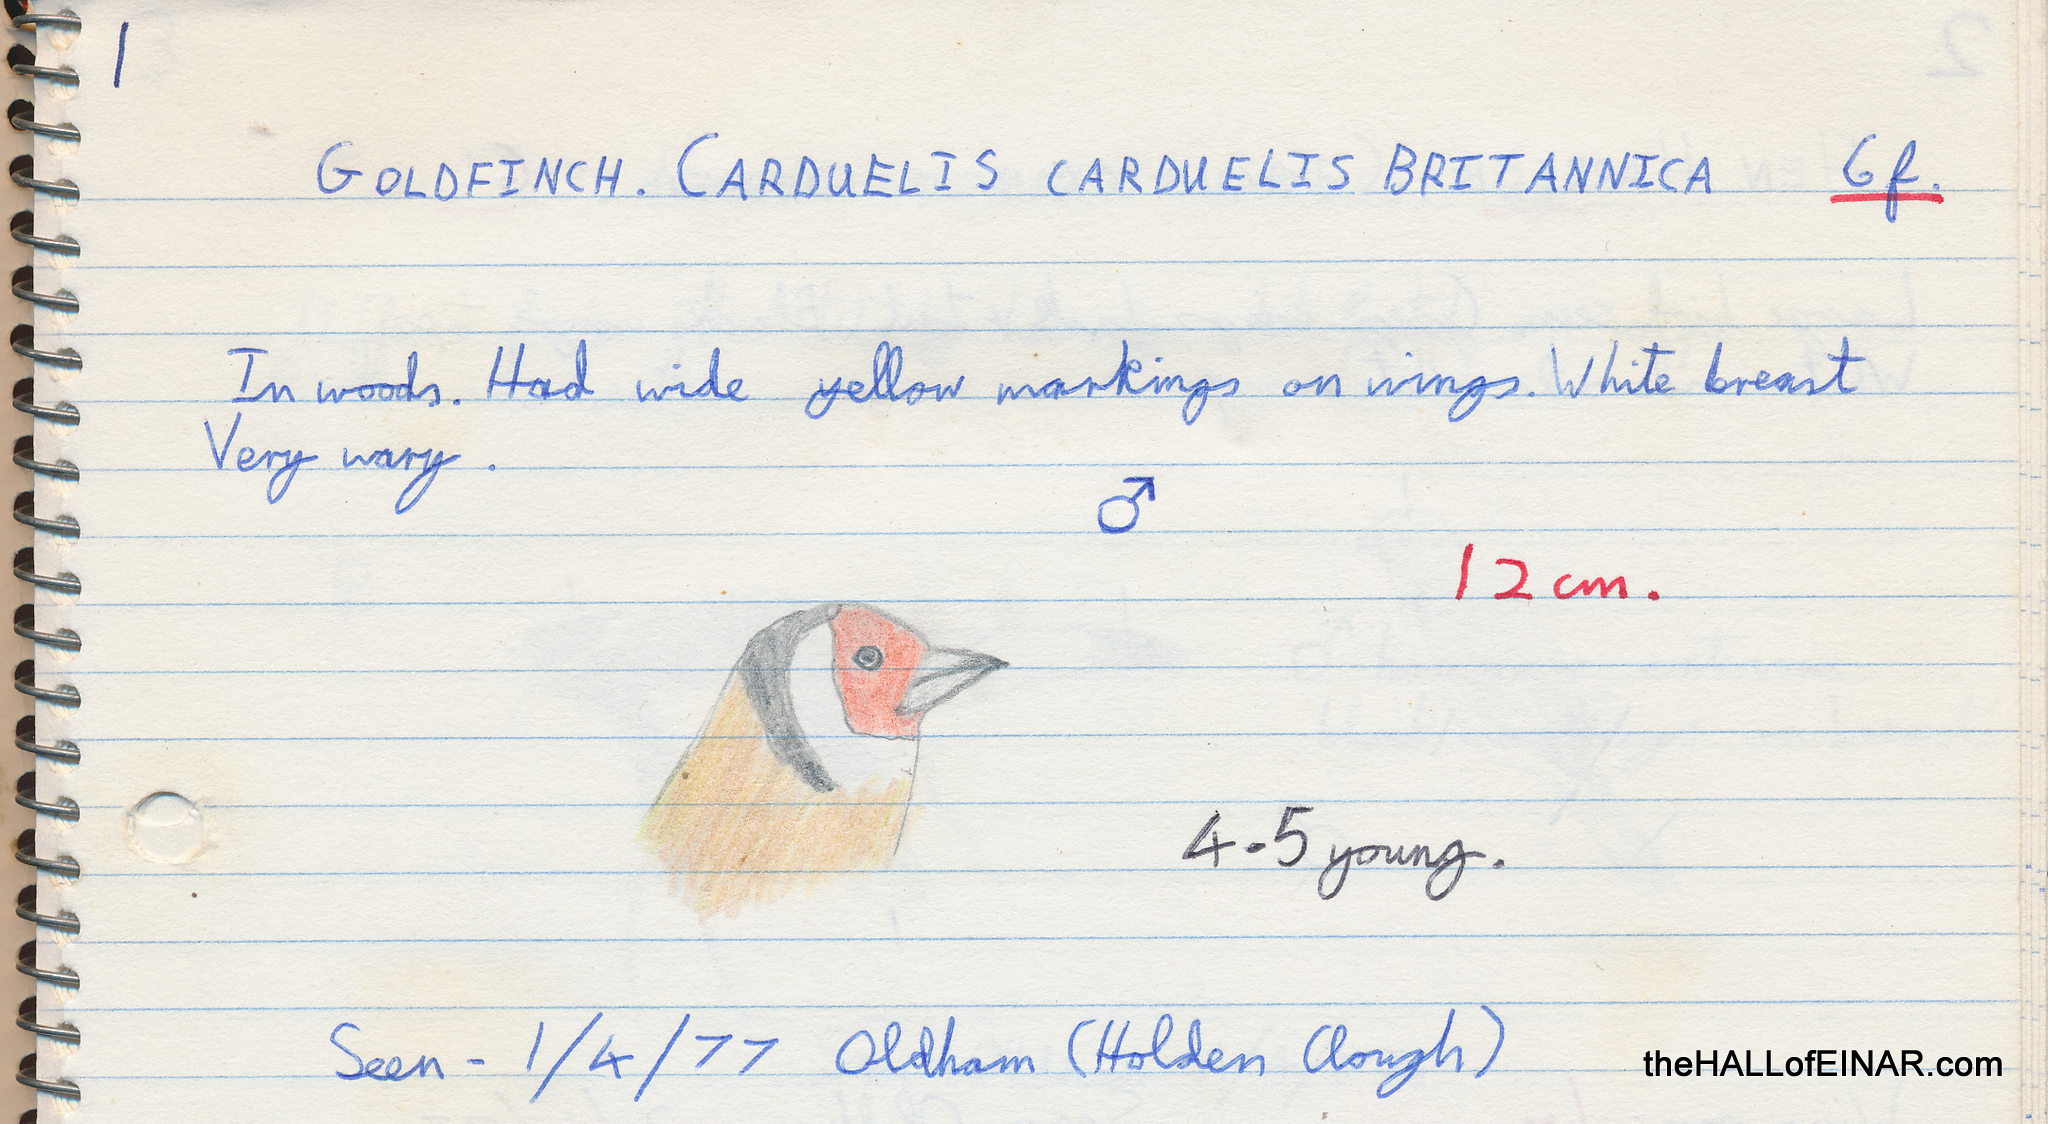 Goldfinch - 1970s Nature Notebooks - The Hall of Einar